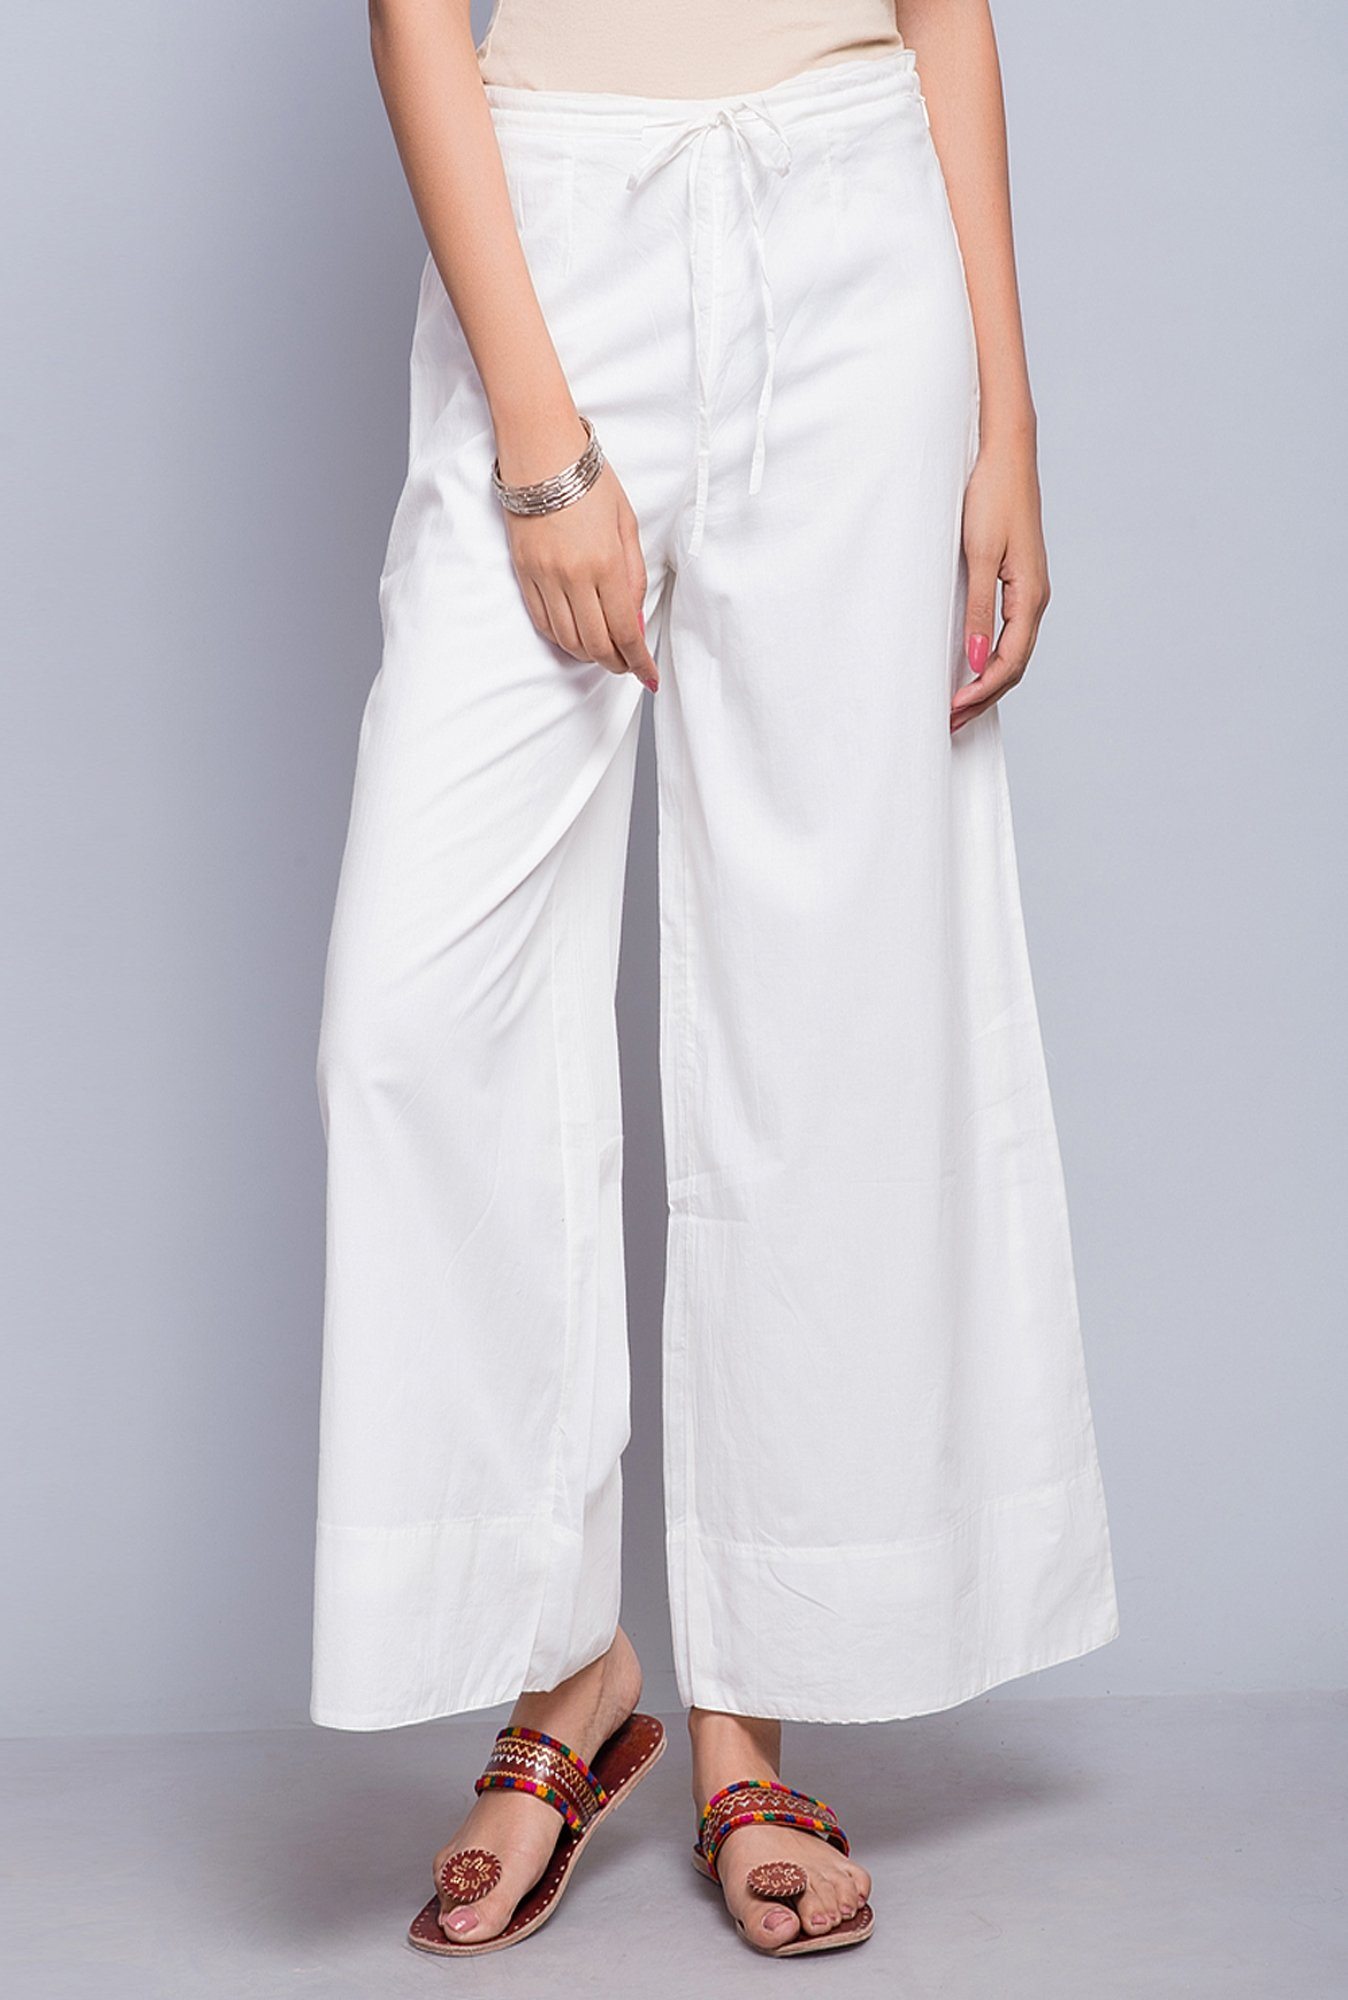 Fabindia White Solid High Rise Palazzo